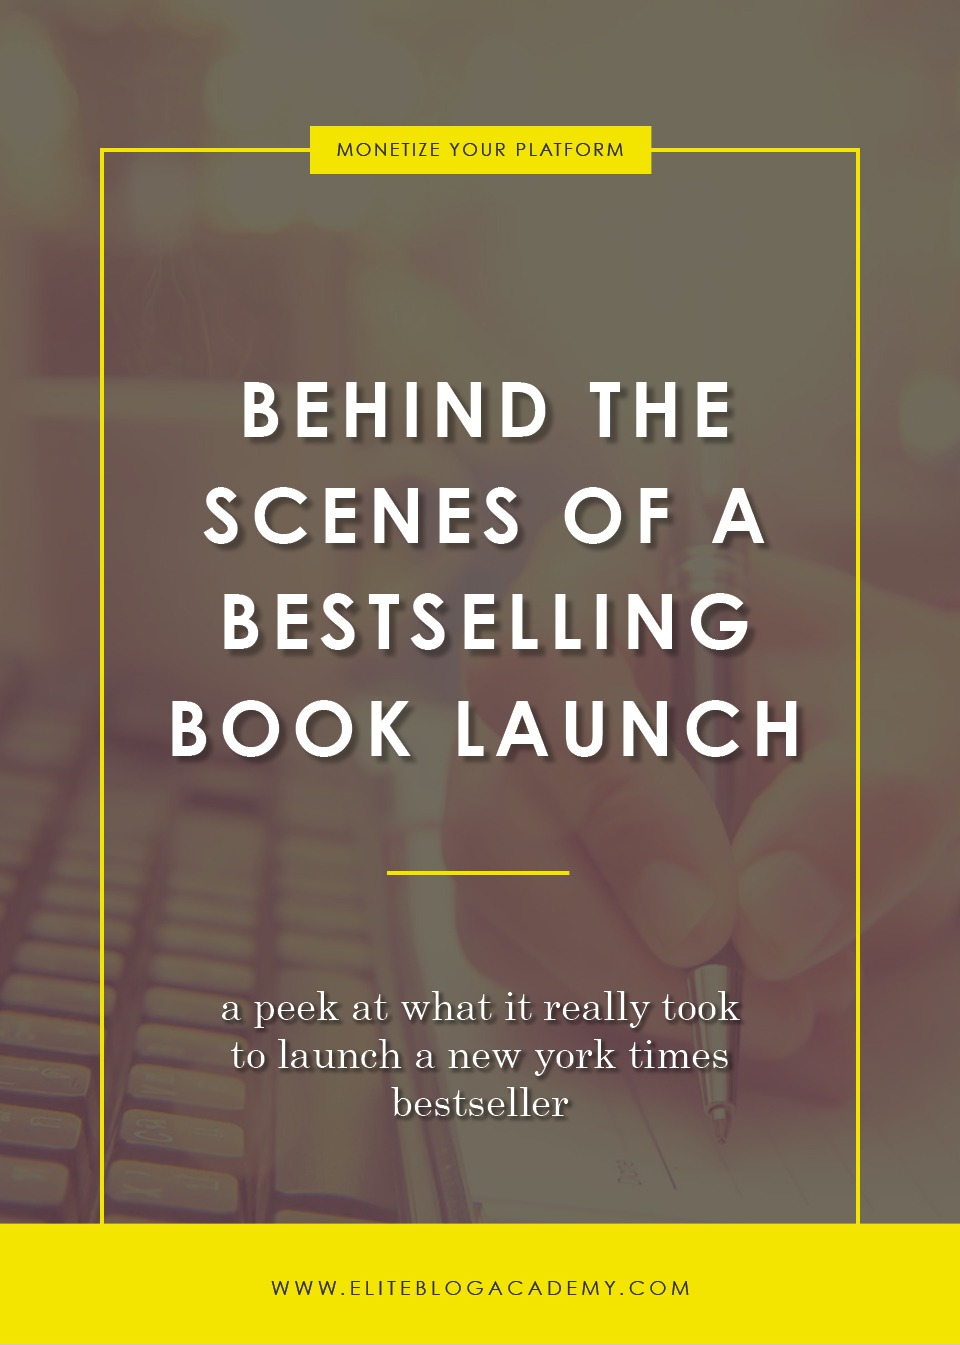 Behind The Scenes Of A Bestselling Book Launch